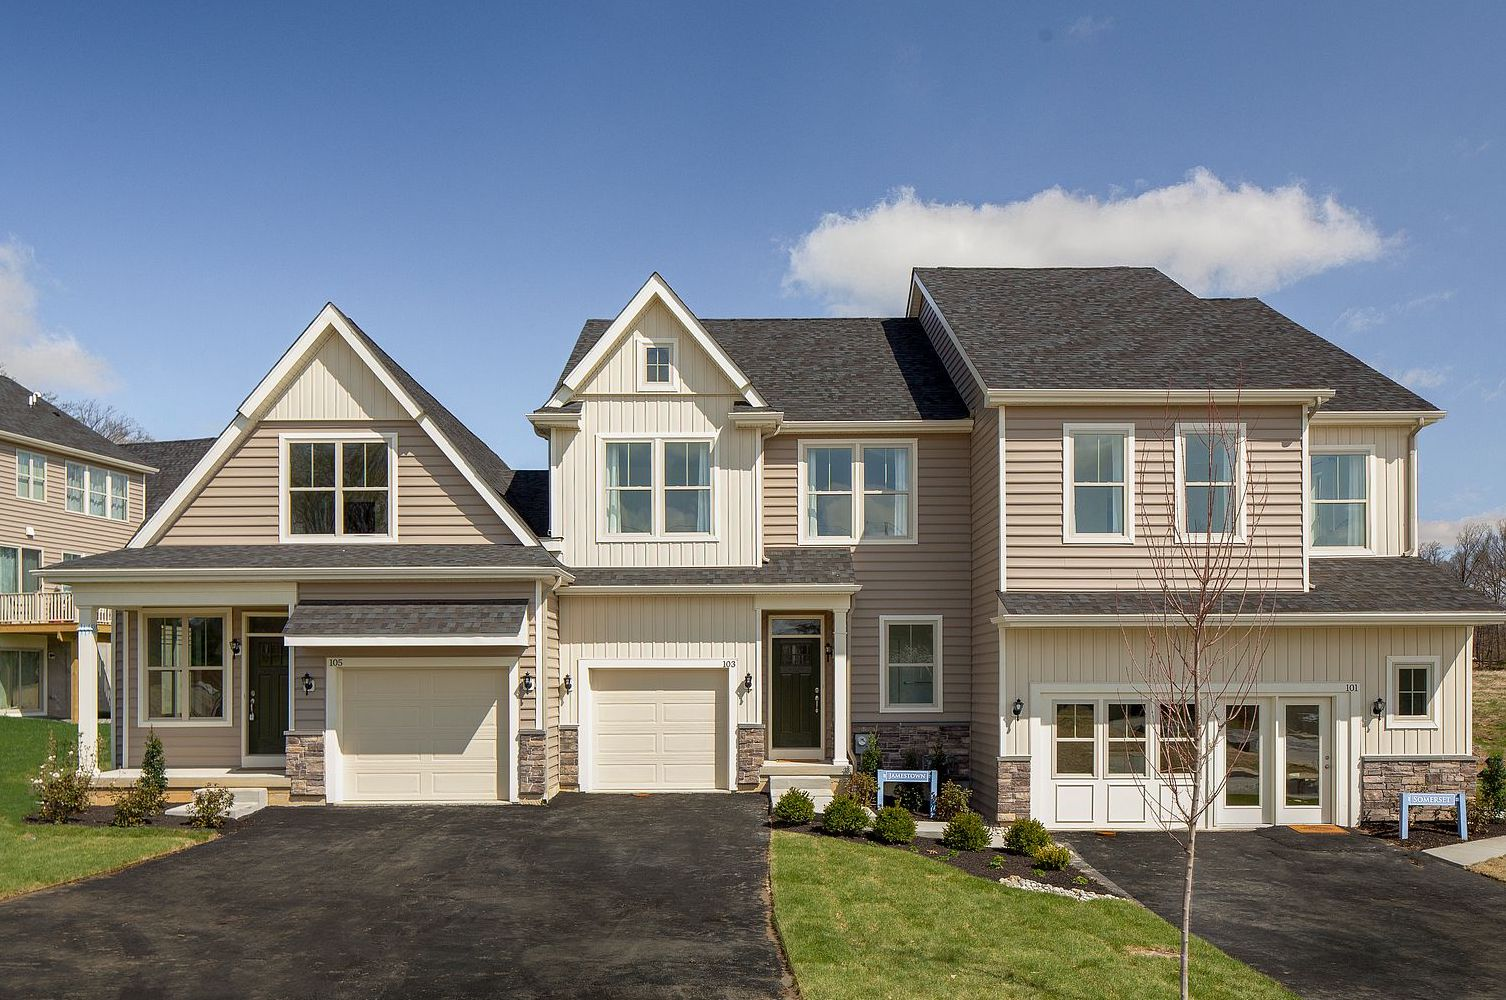 Image of the exterior of a townhome exterior at Pemberton